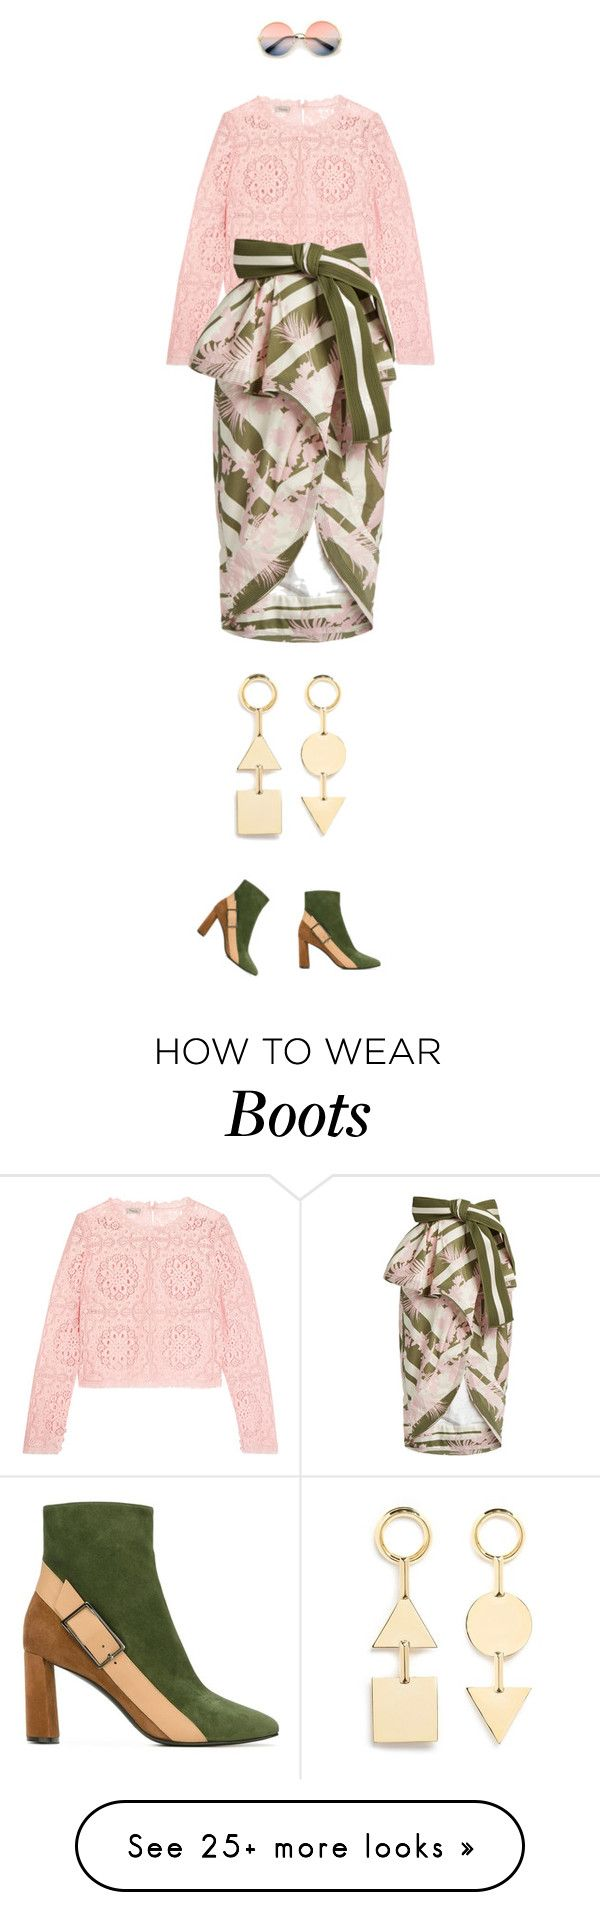 """eva 0604"" by evava-c on Polyvore featuring Temperley London, Johanna Ortiz, Casadei, ZeroUV and Eddie Borgo"